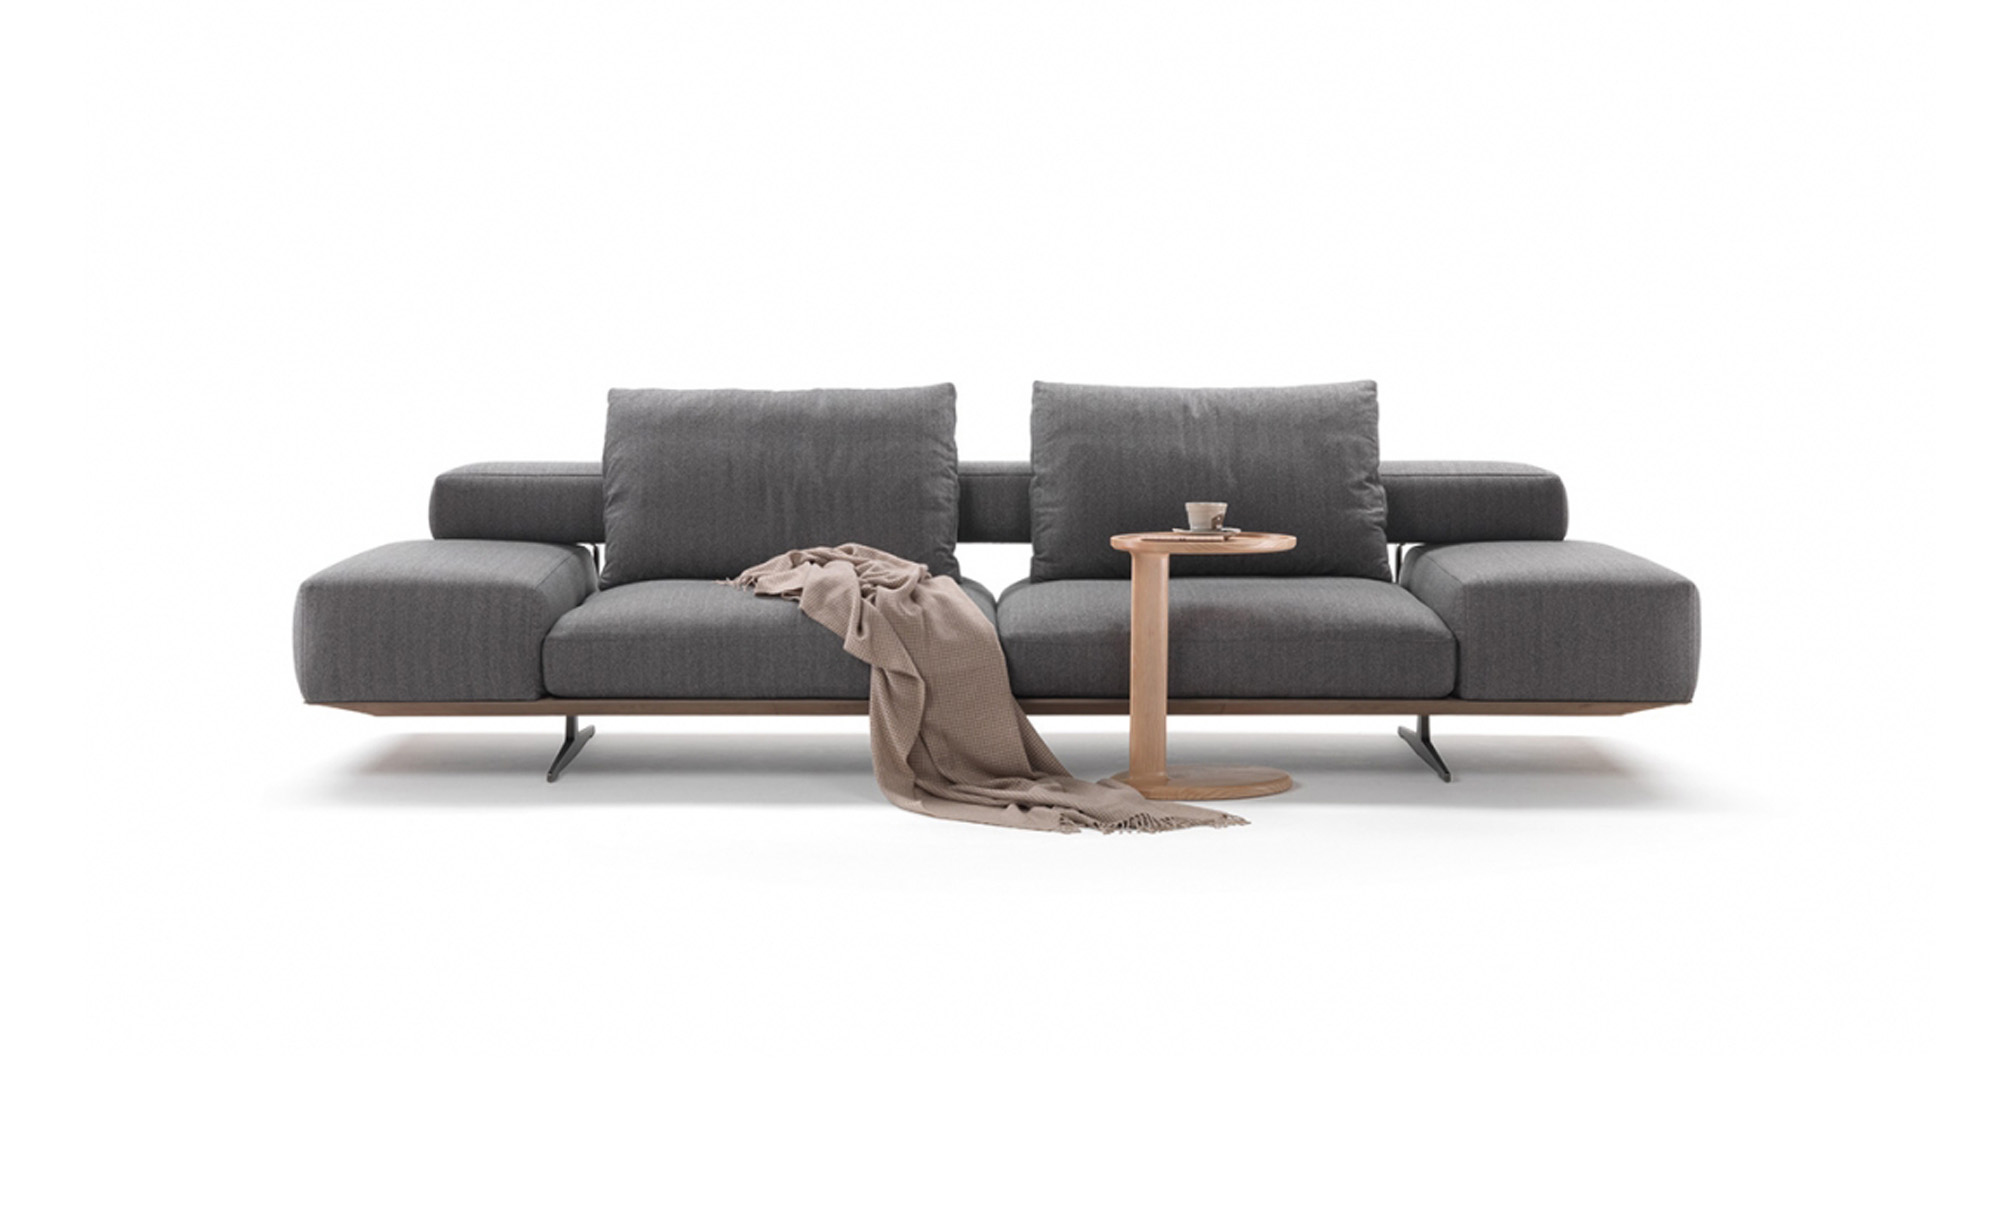 Chaise sofas melbourne for Chaise furniture melbourne